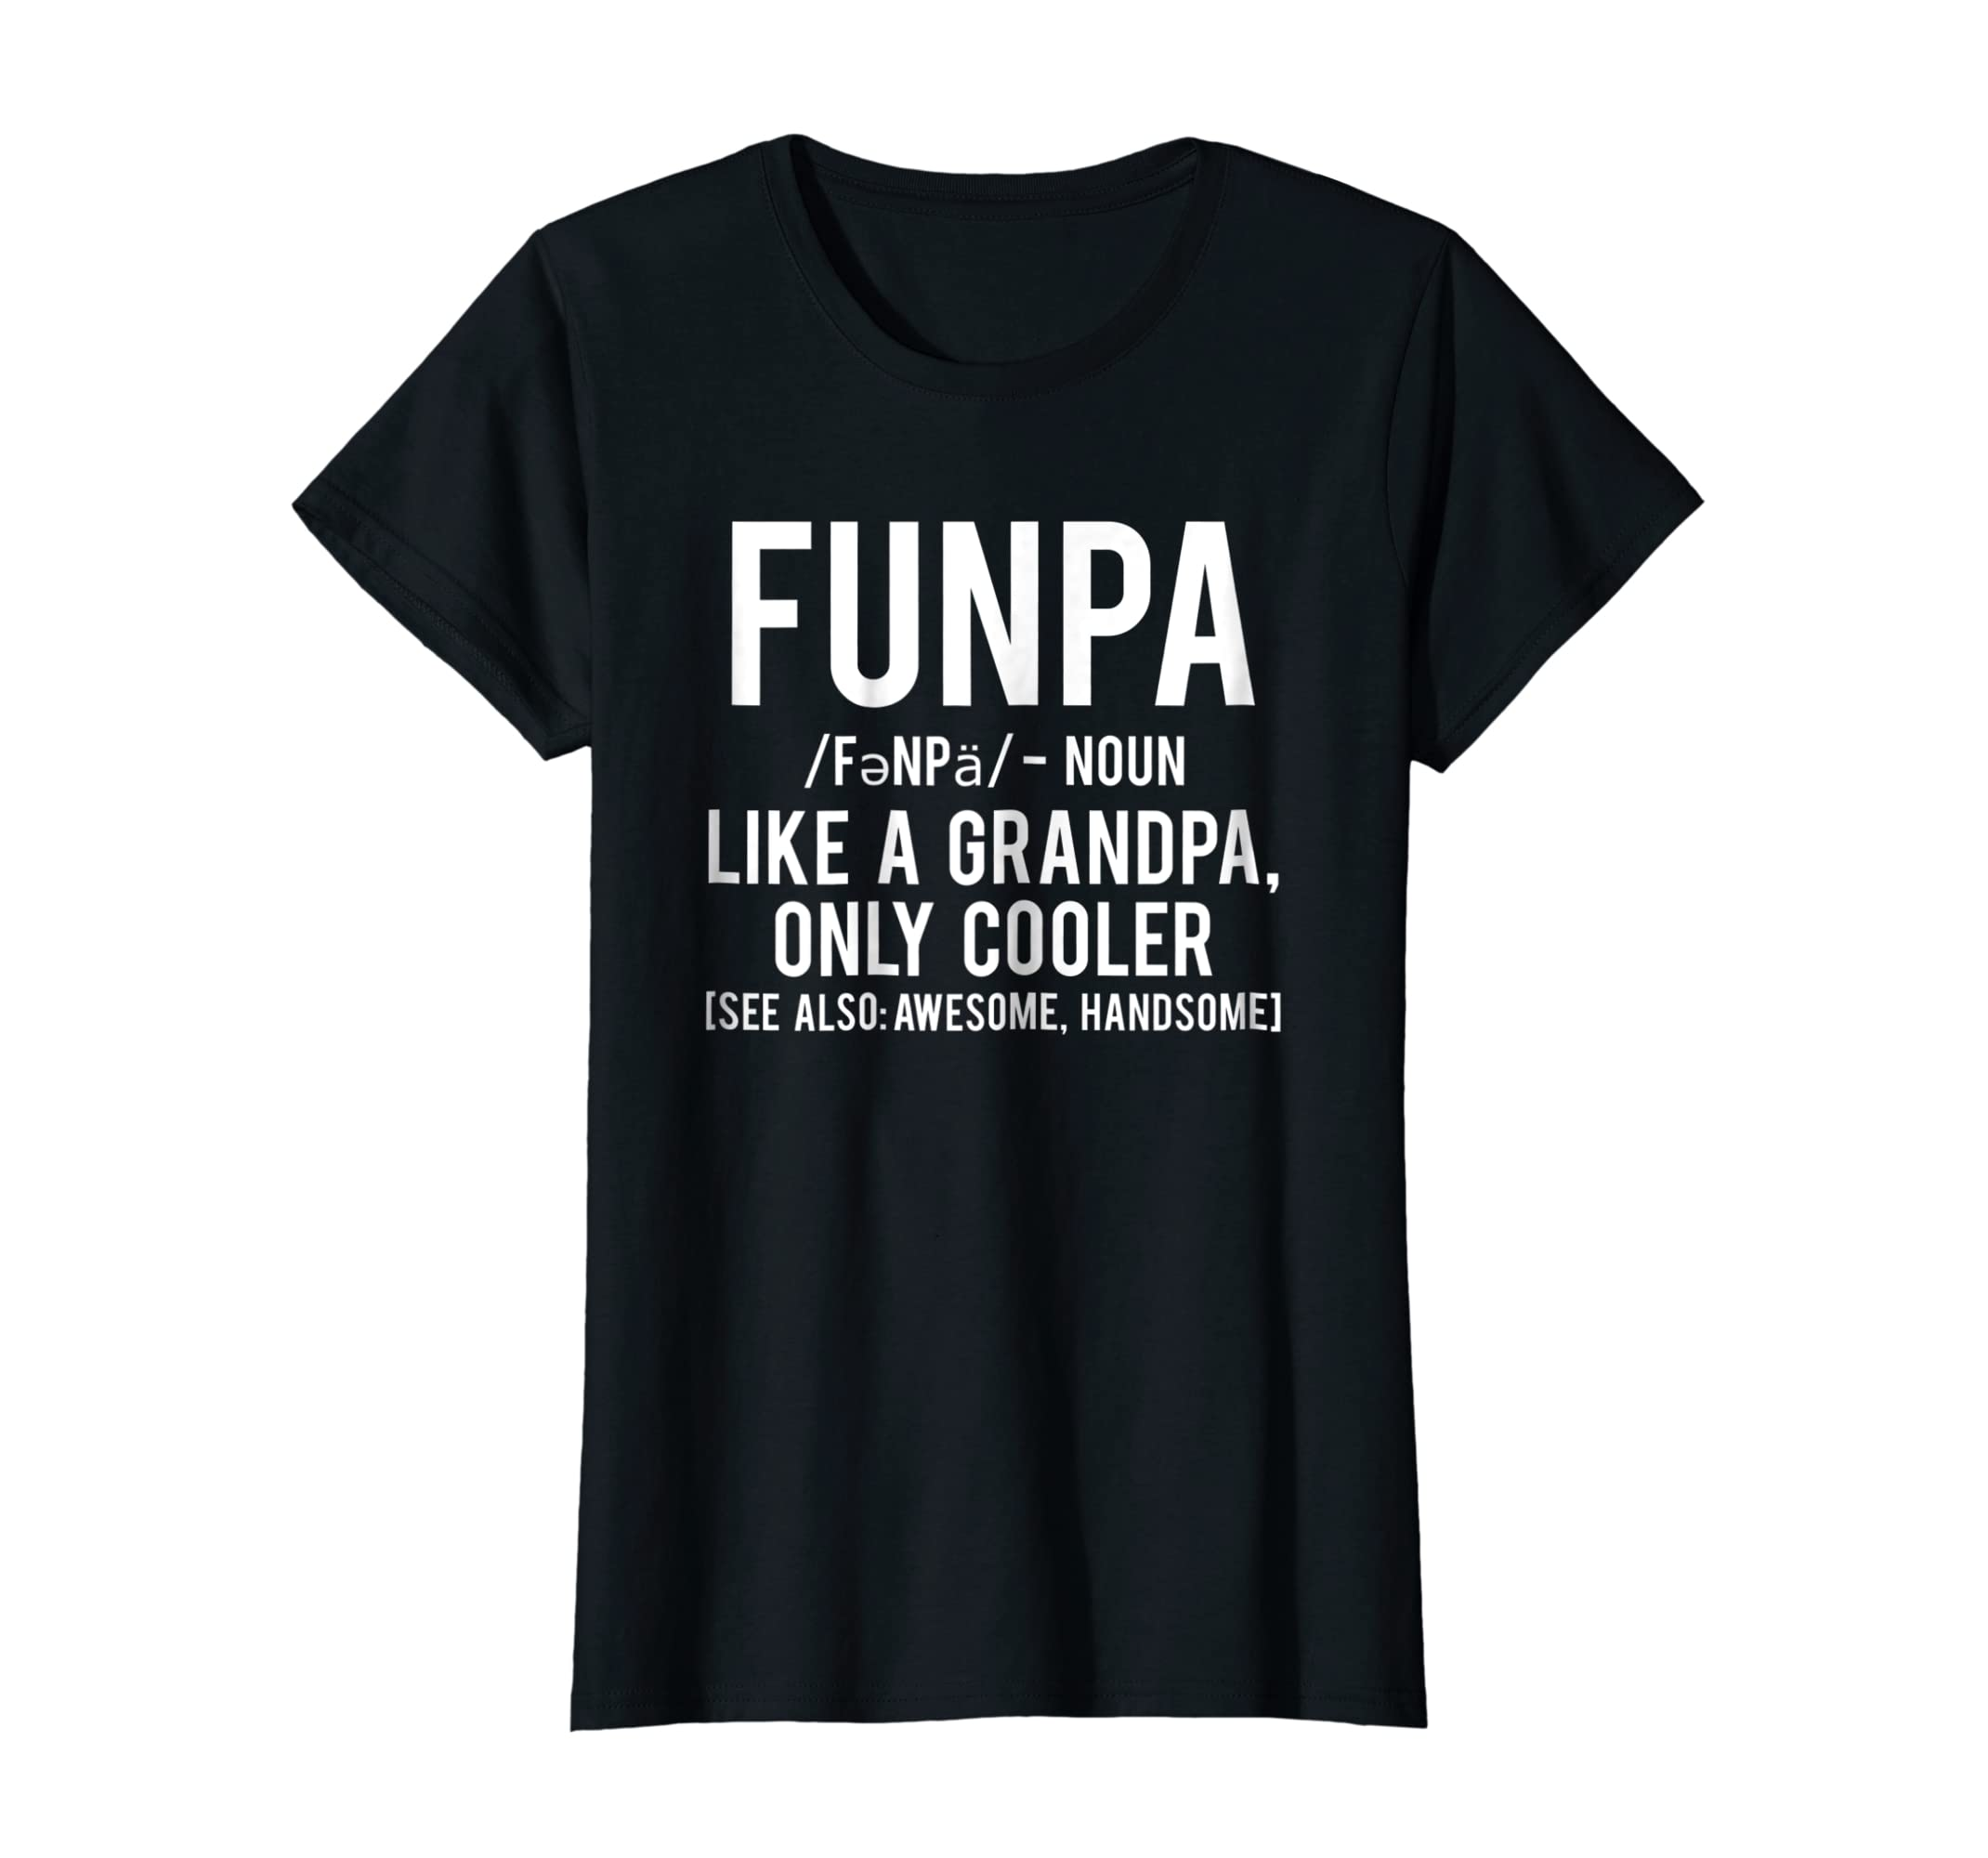 2542bf0dc Amazon.com: Funpa T Shirt Funny Grandpa cool grandfather papa gift tee:  Clothing